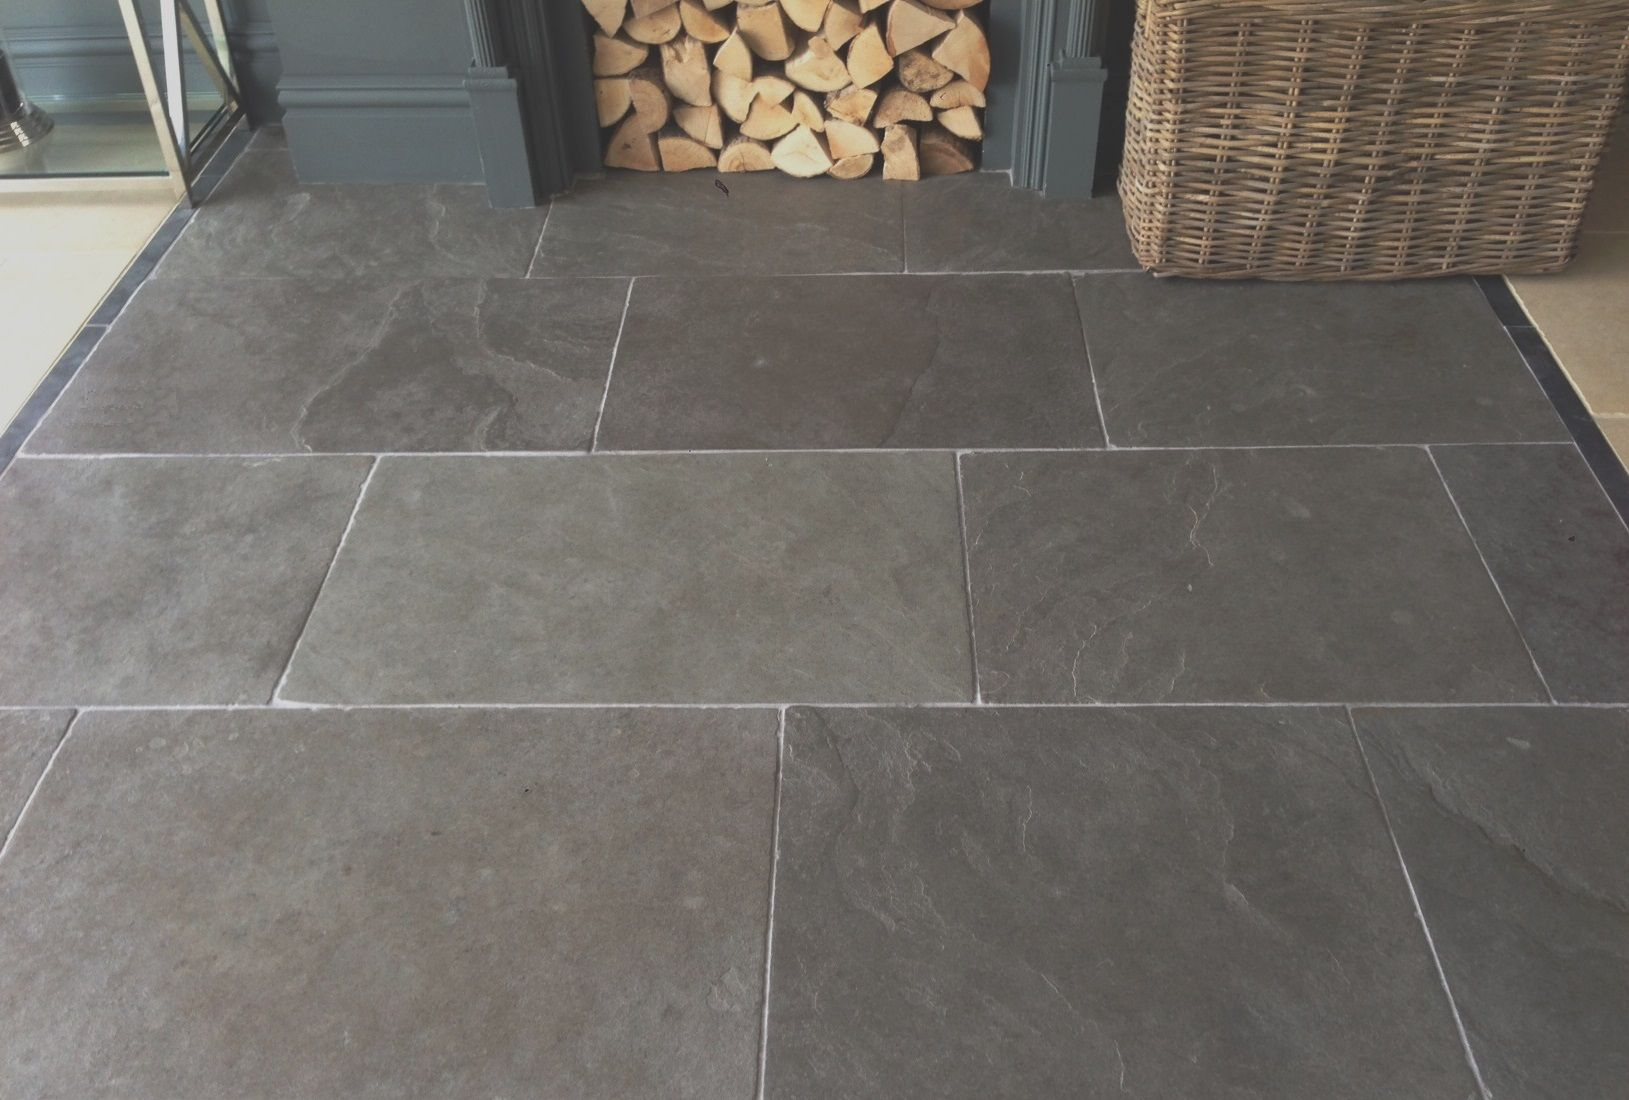 Rustic and warm ashton grey limestone flagstones are perfect for rustic and warm ashton grey limestone flagstones are perfect for creating really rustic feel and dailygadgetfo Gallery